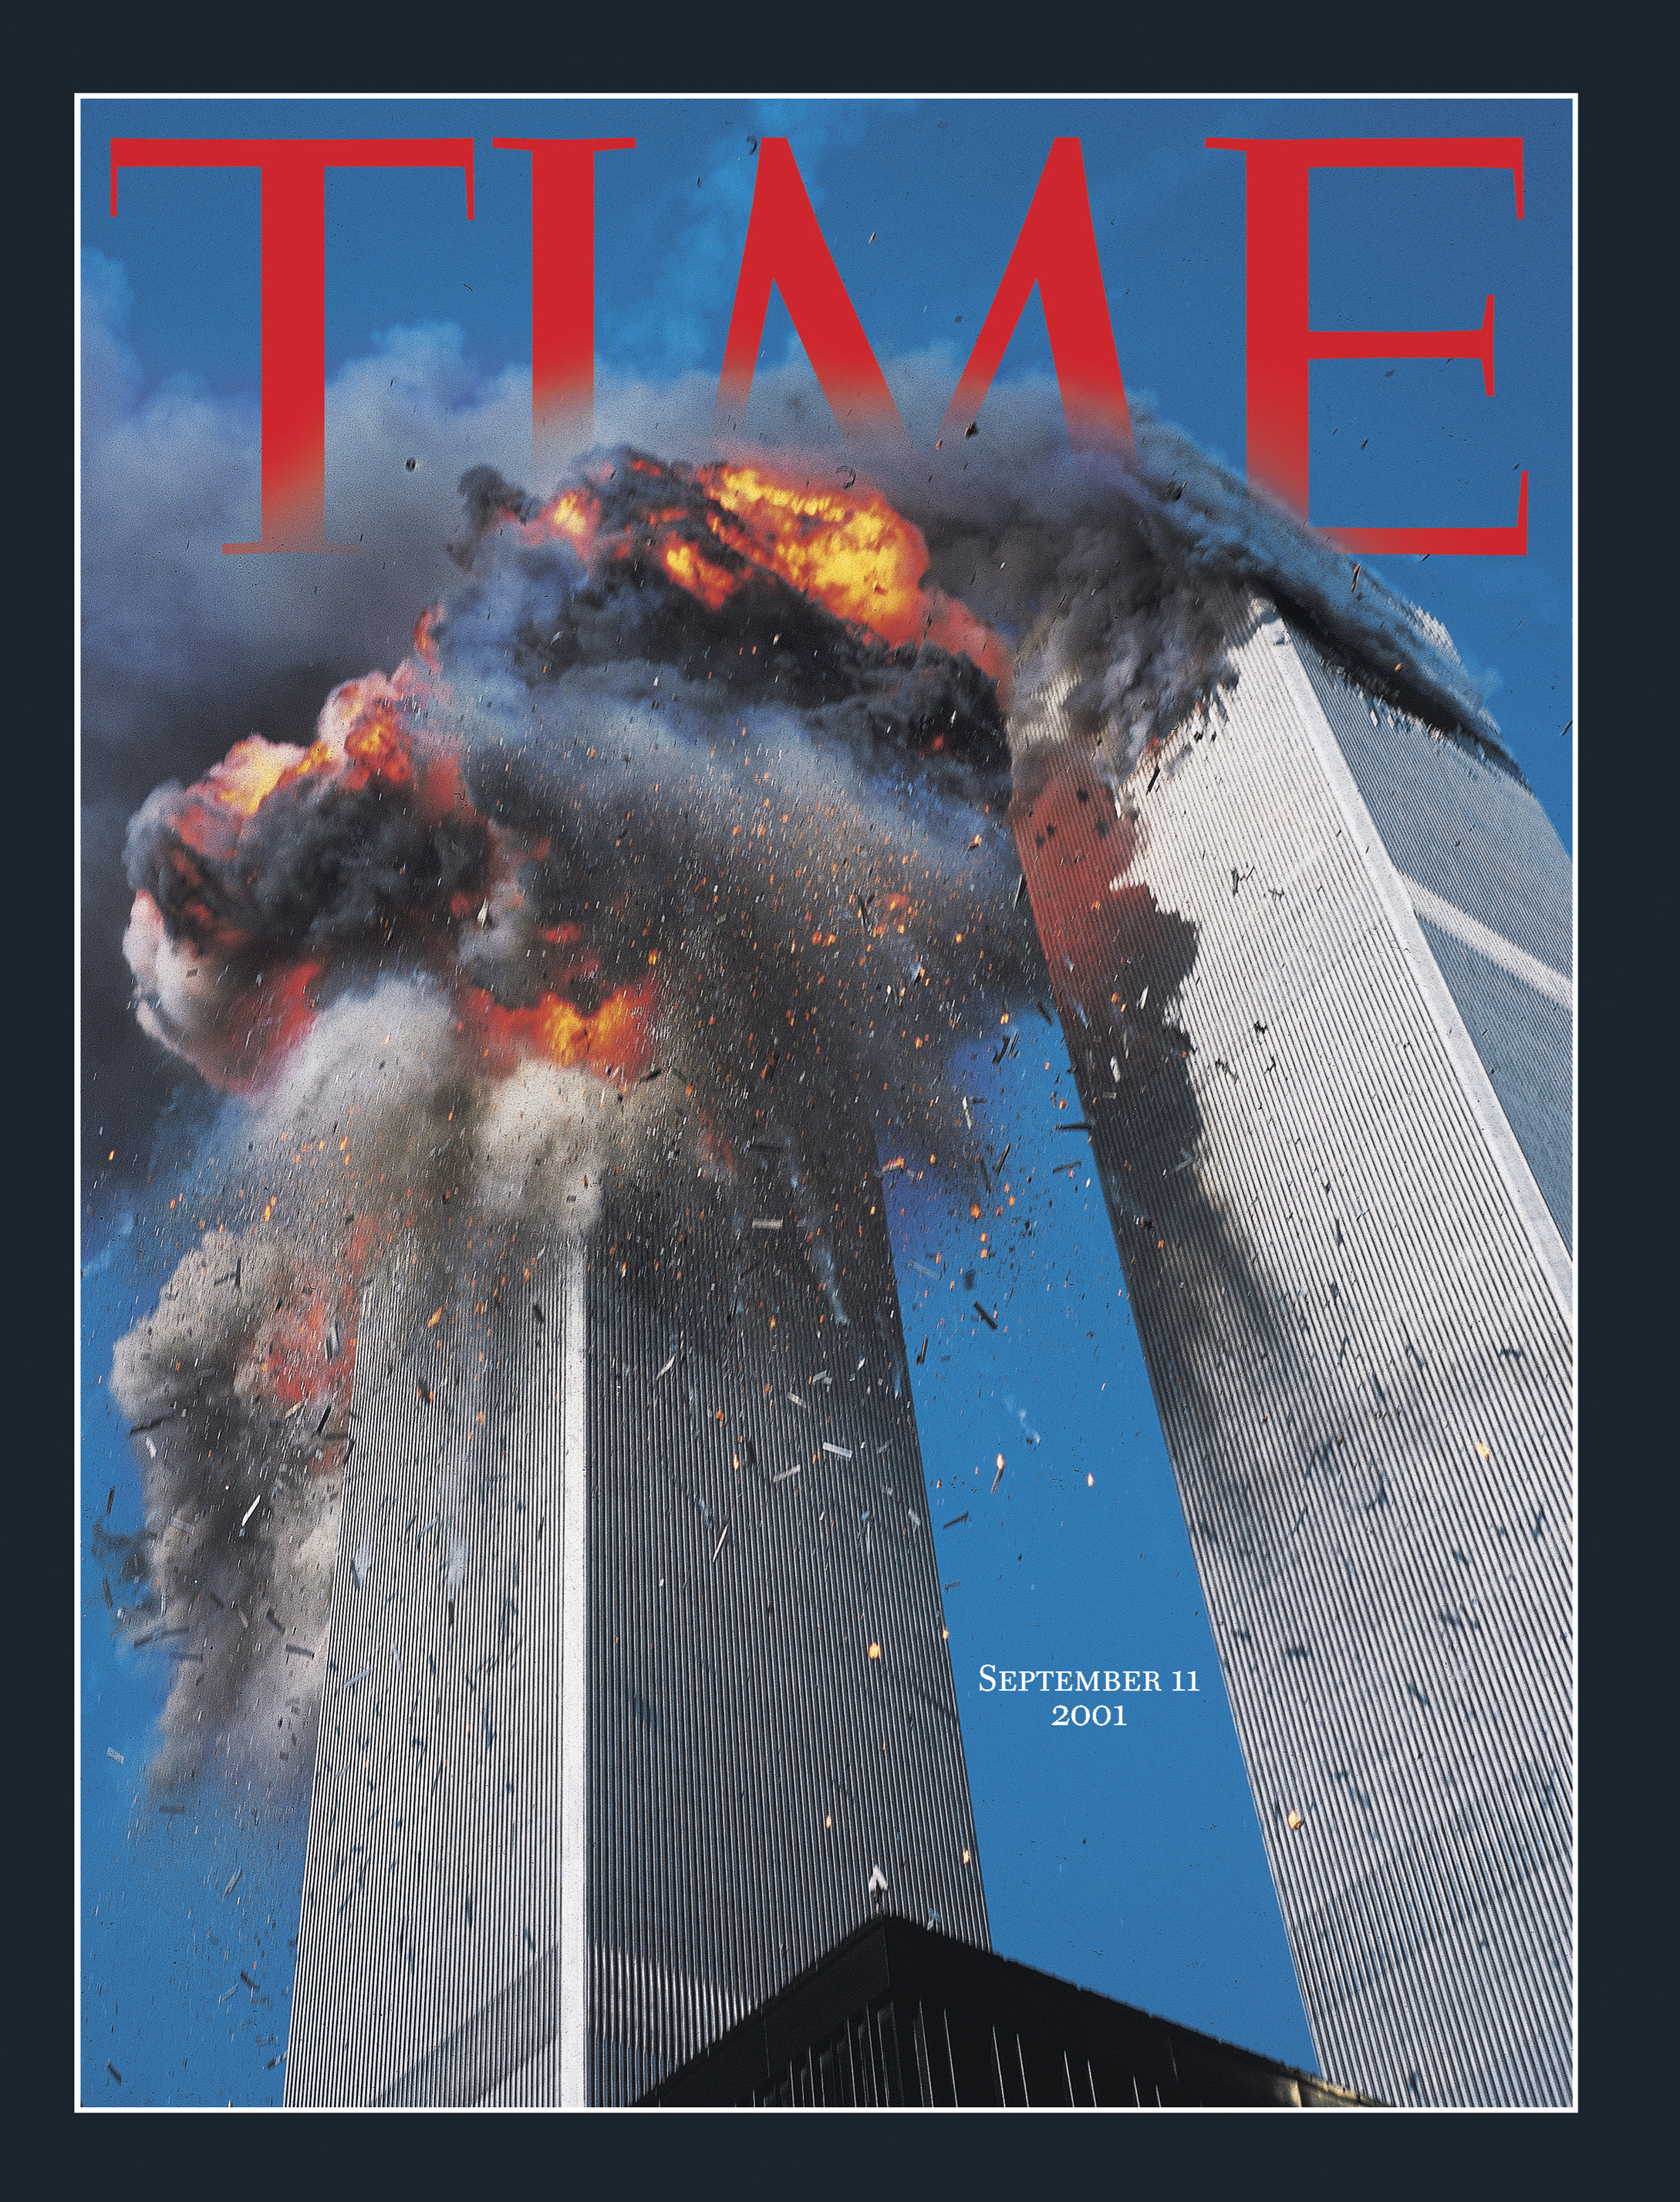 The special Sept. 11, 2001 issue of TIME magazine.